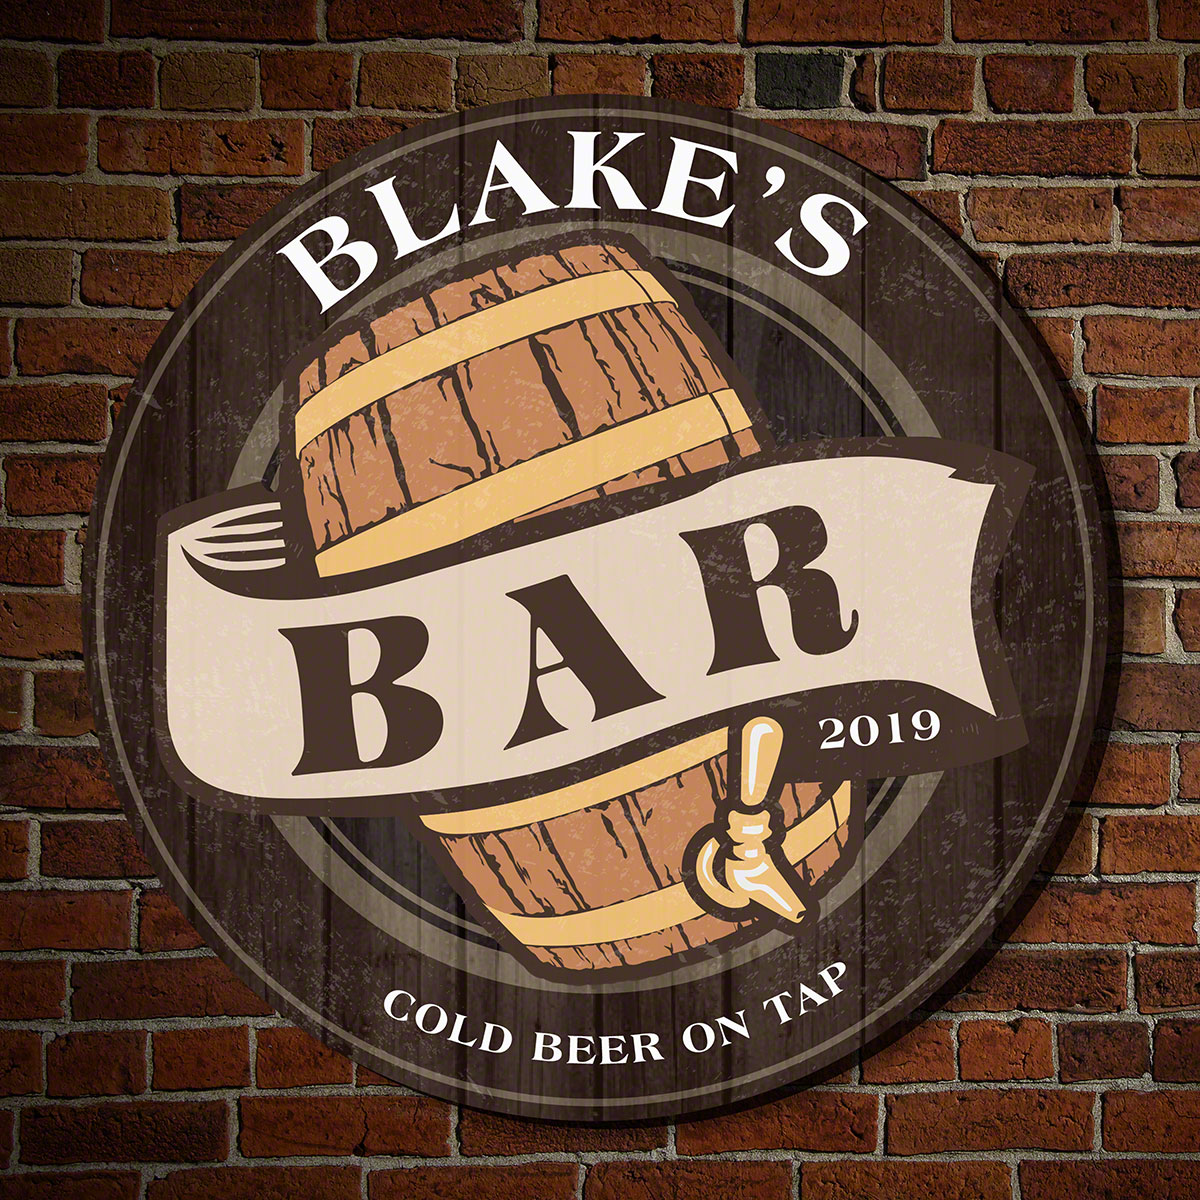 What better way to welcome friends to your home than with this Old Fashioned Beer Barrel custom wooden bar sign. Made to order with a vintage-style barrel & tap, each piece of wall decor comes personalized with two lines of custom text and the year of you #bar